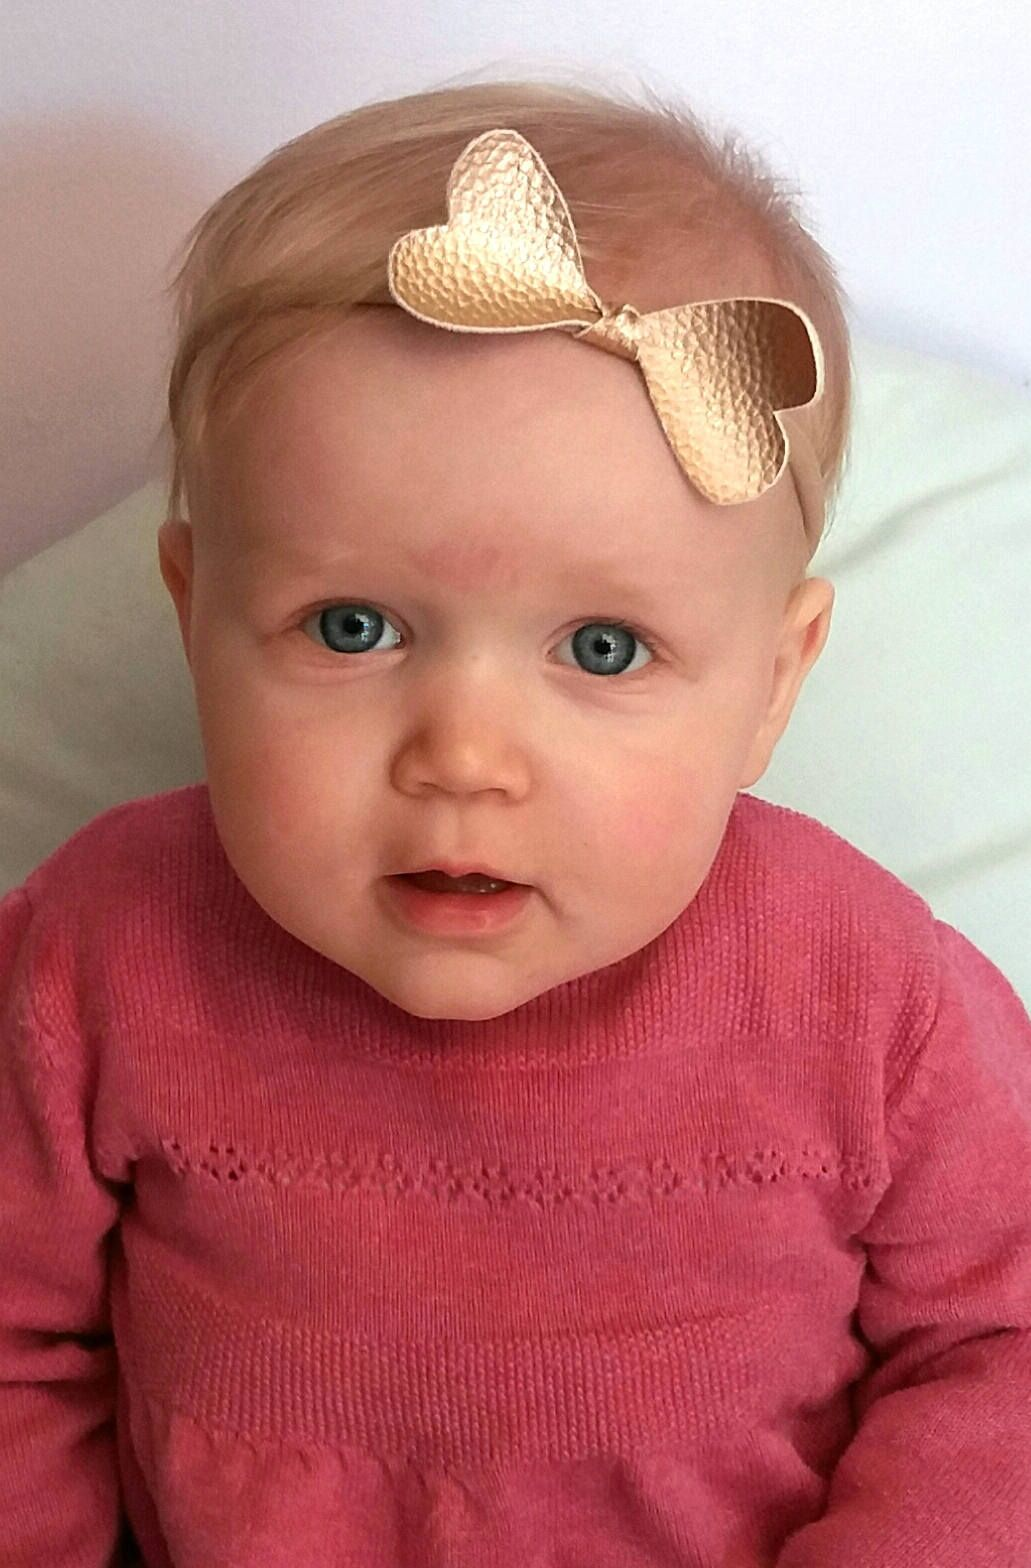 Hair accessories headbands uk - Knot Bow Baby Headbands Rose Gold Pink White Hair Accessories Gift